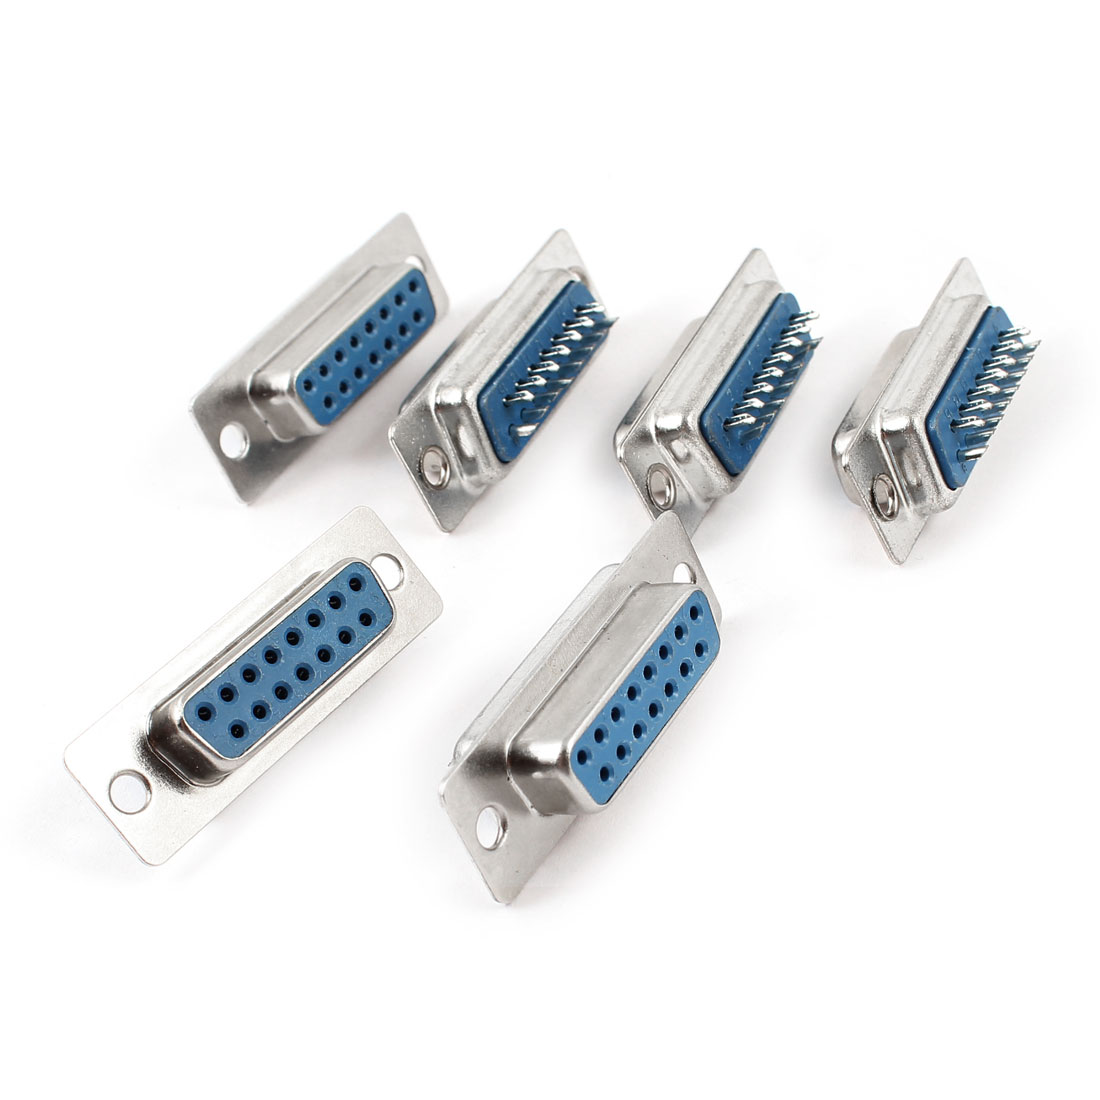 6 Pcs DB15 DB-15 Dual Row 15-pin Female Connector VGA Cable Adapter Interface